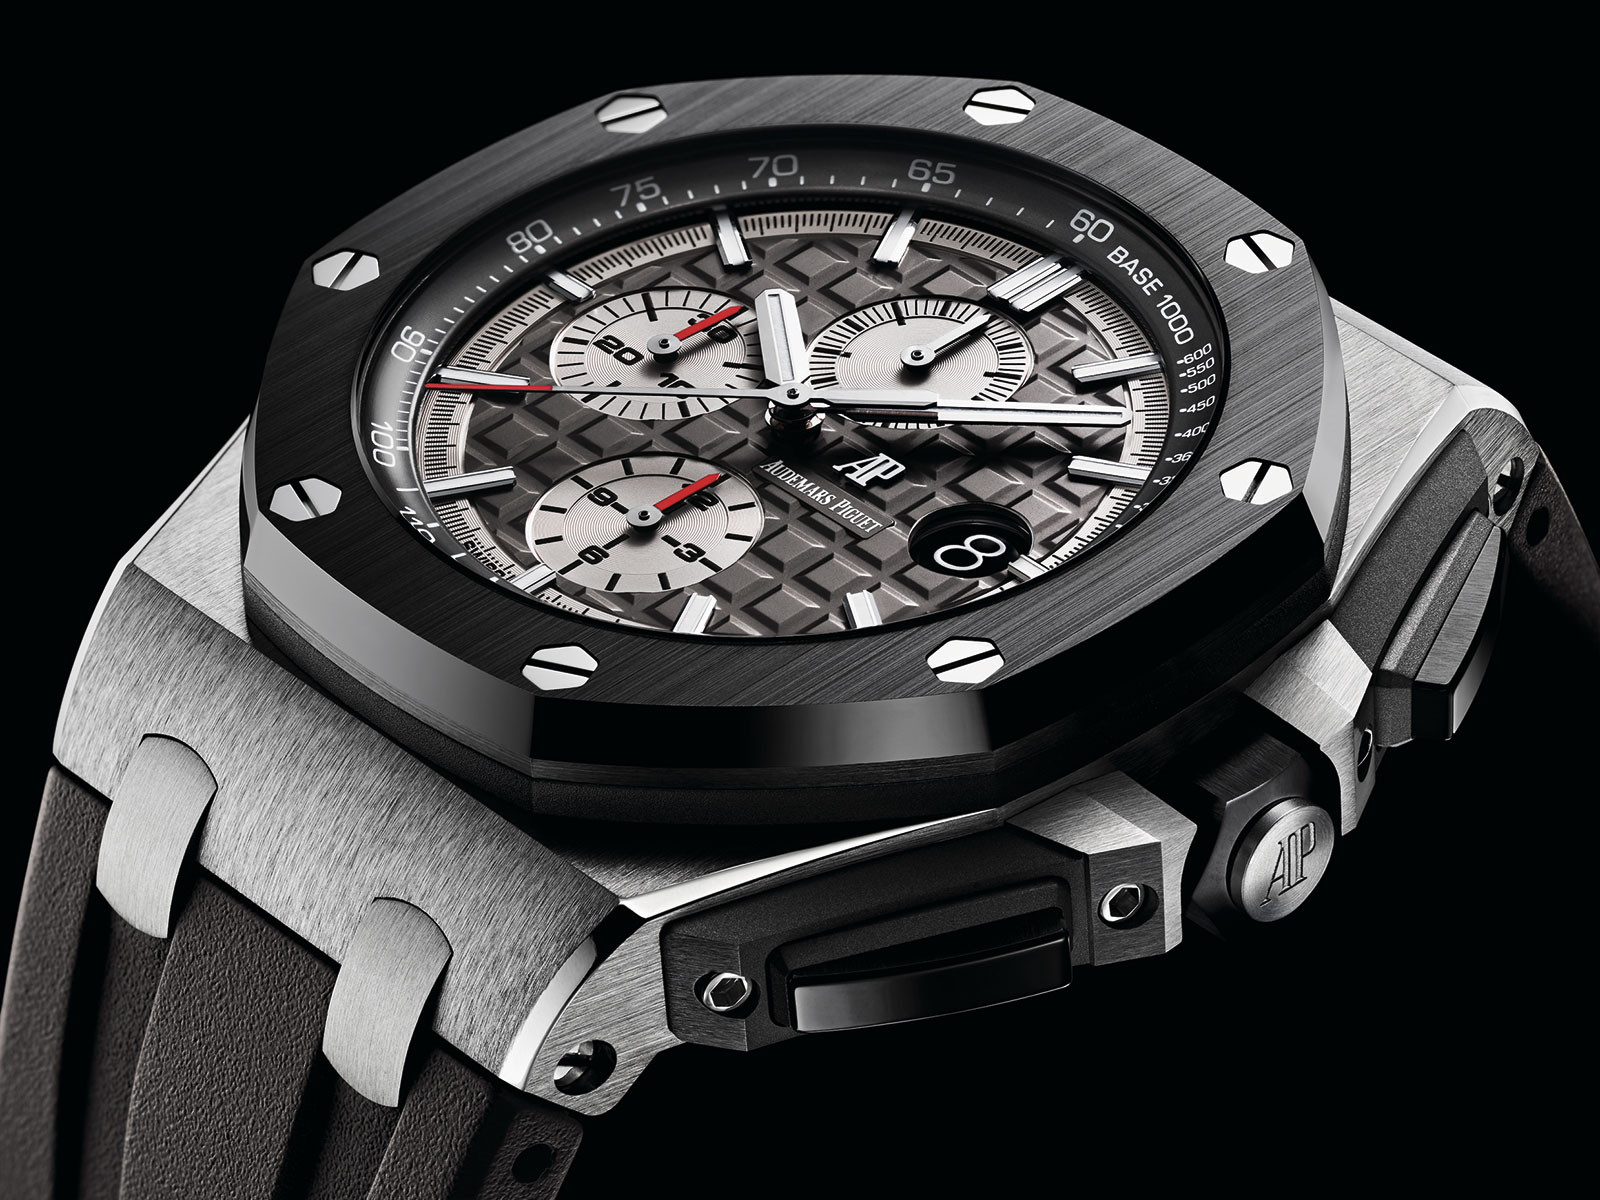 Audemars piguet introduces facelifted royal oak offshore chronograph 44mm including first ever for Royal oak offshore ceramic